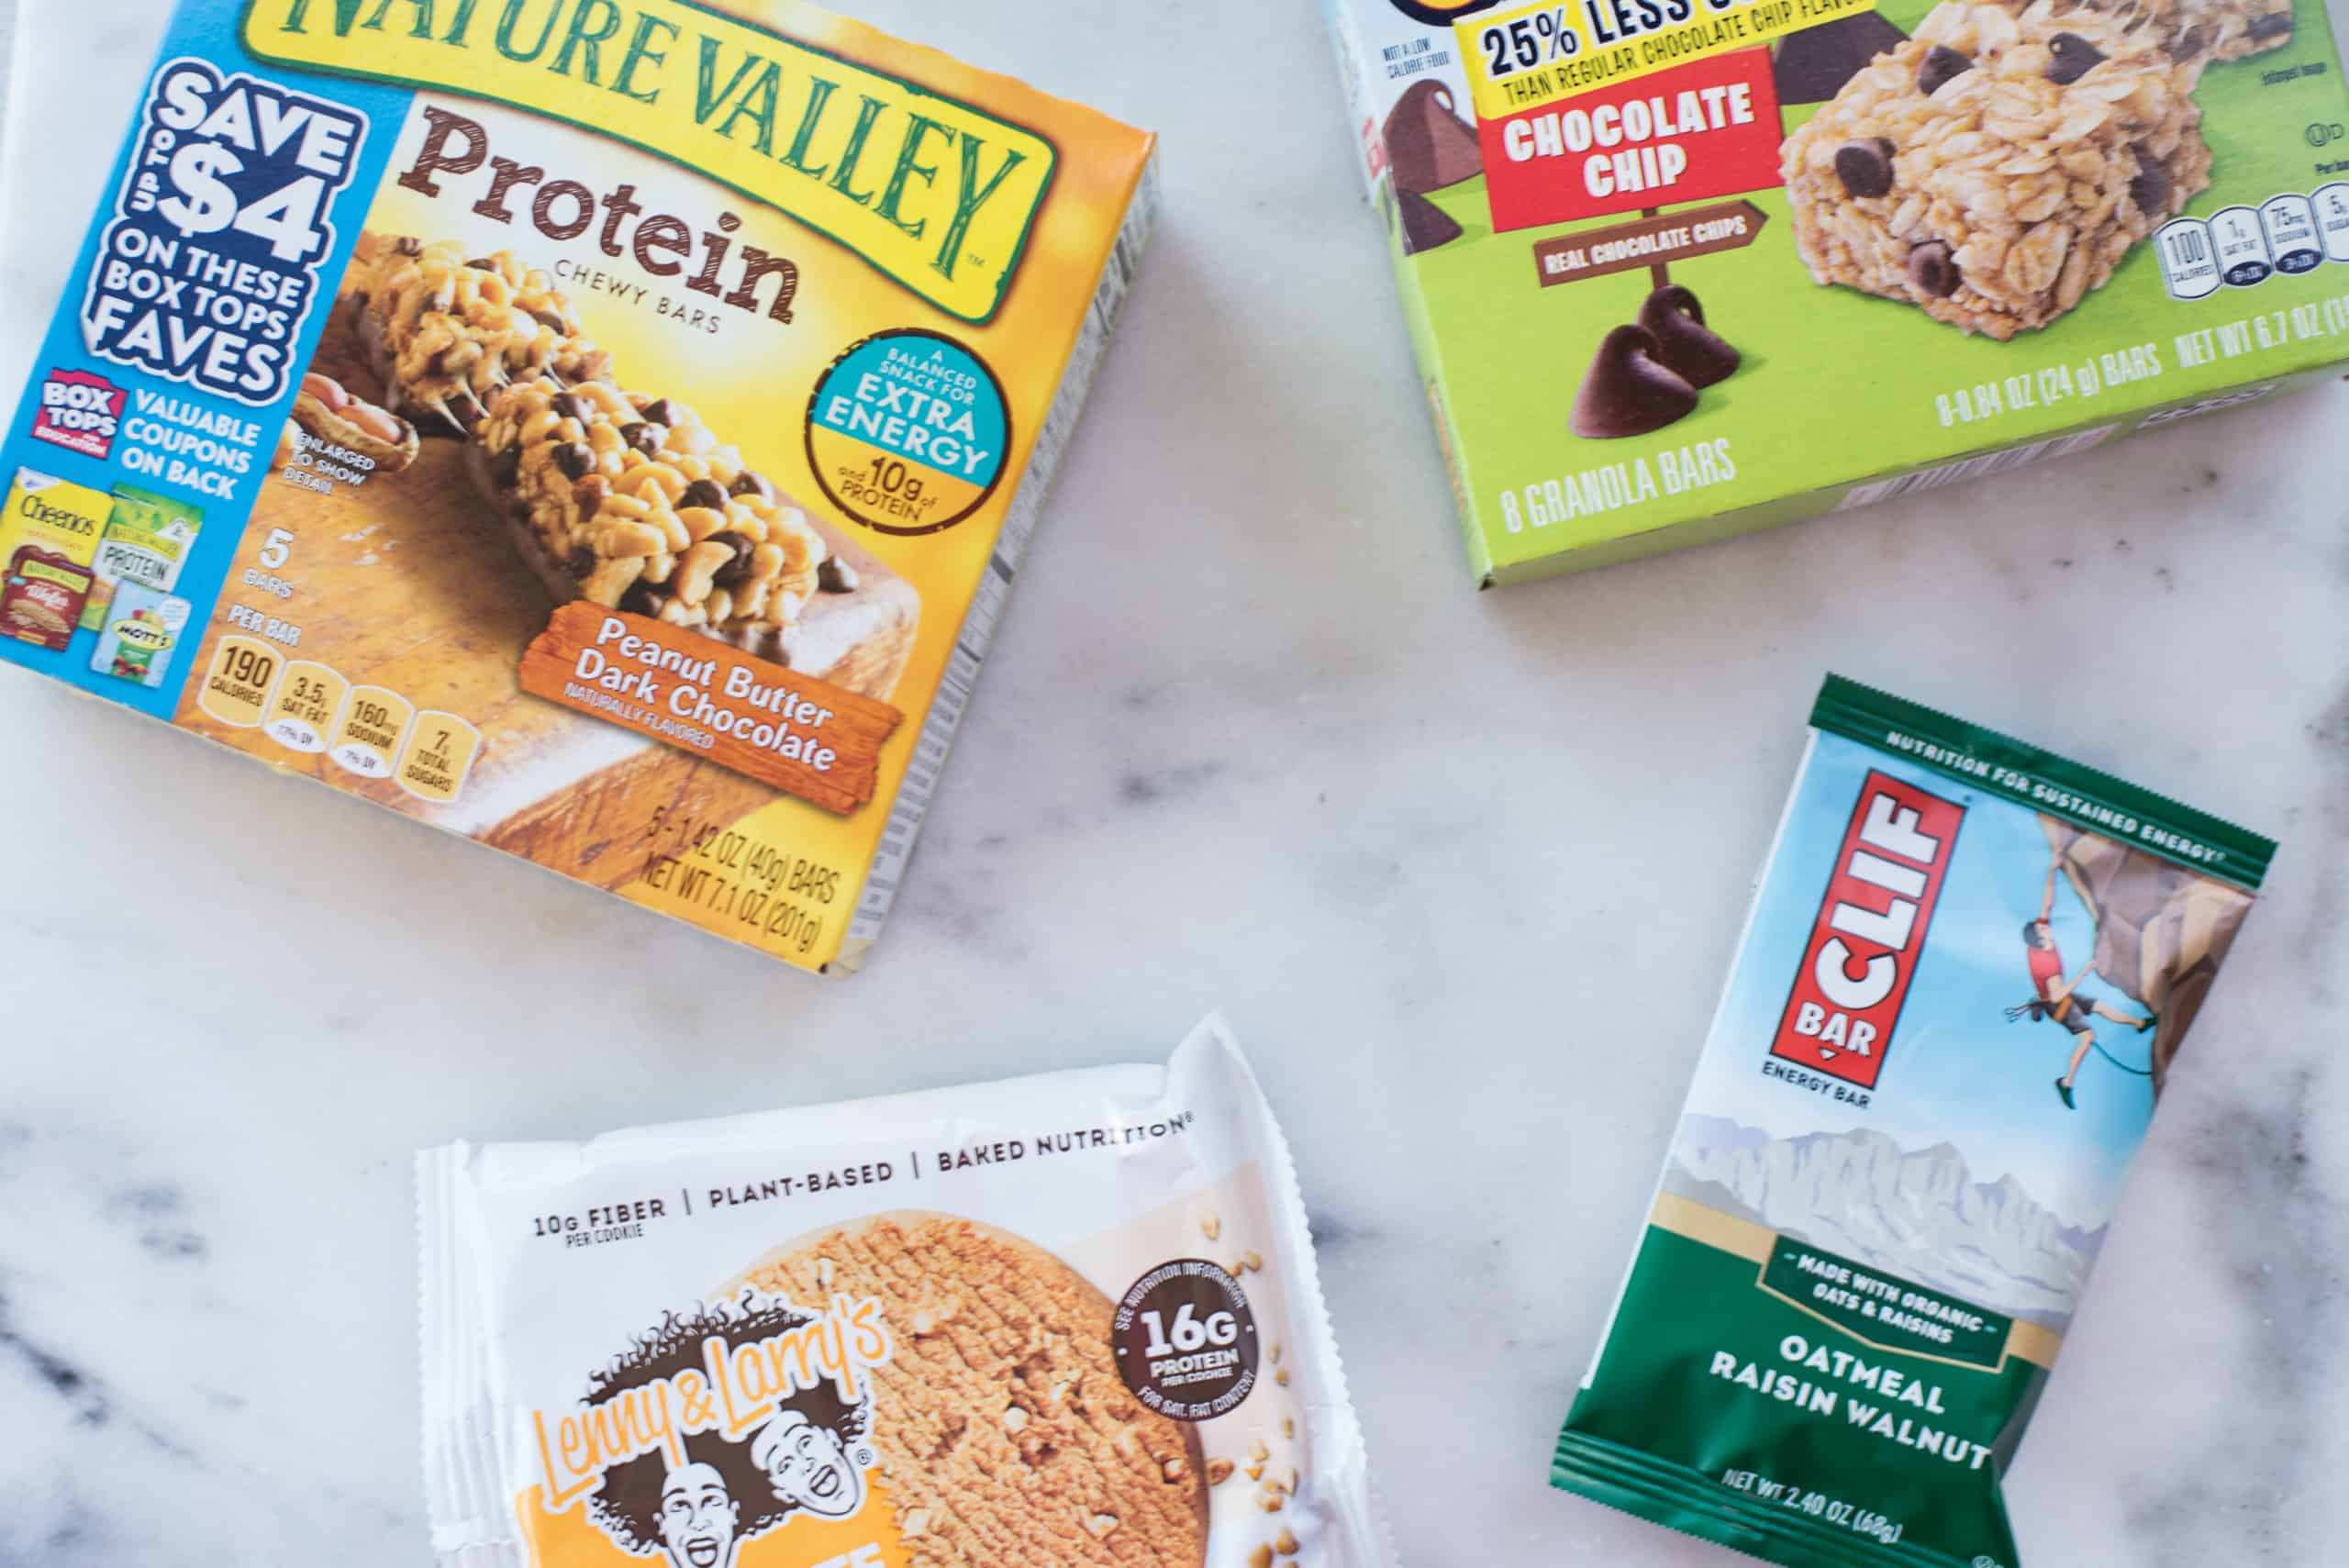 Overhead view of packaged foods that may contain saturated and trans fats, such as cookies and granola bars.